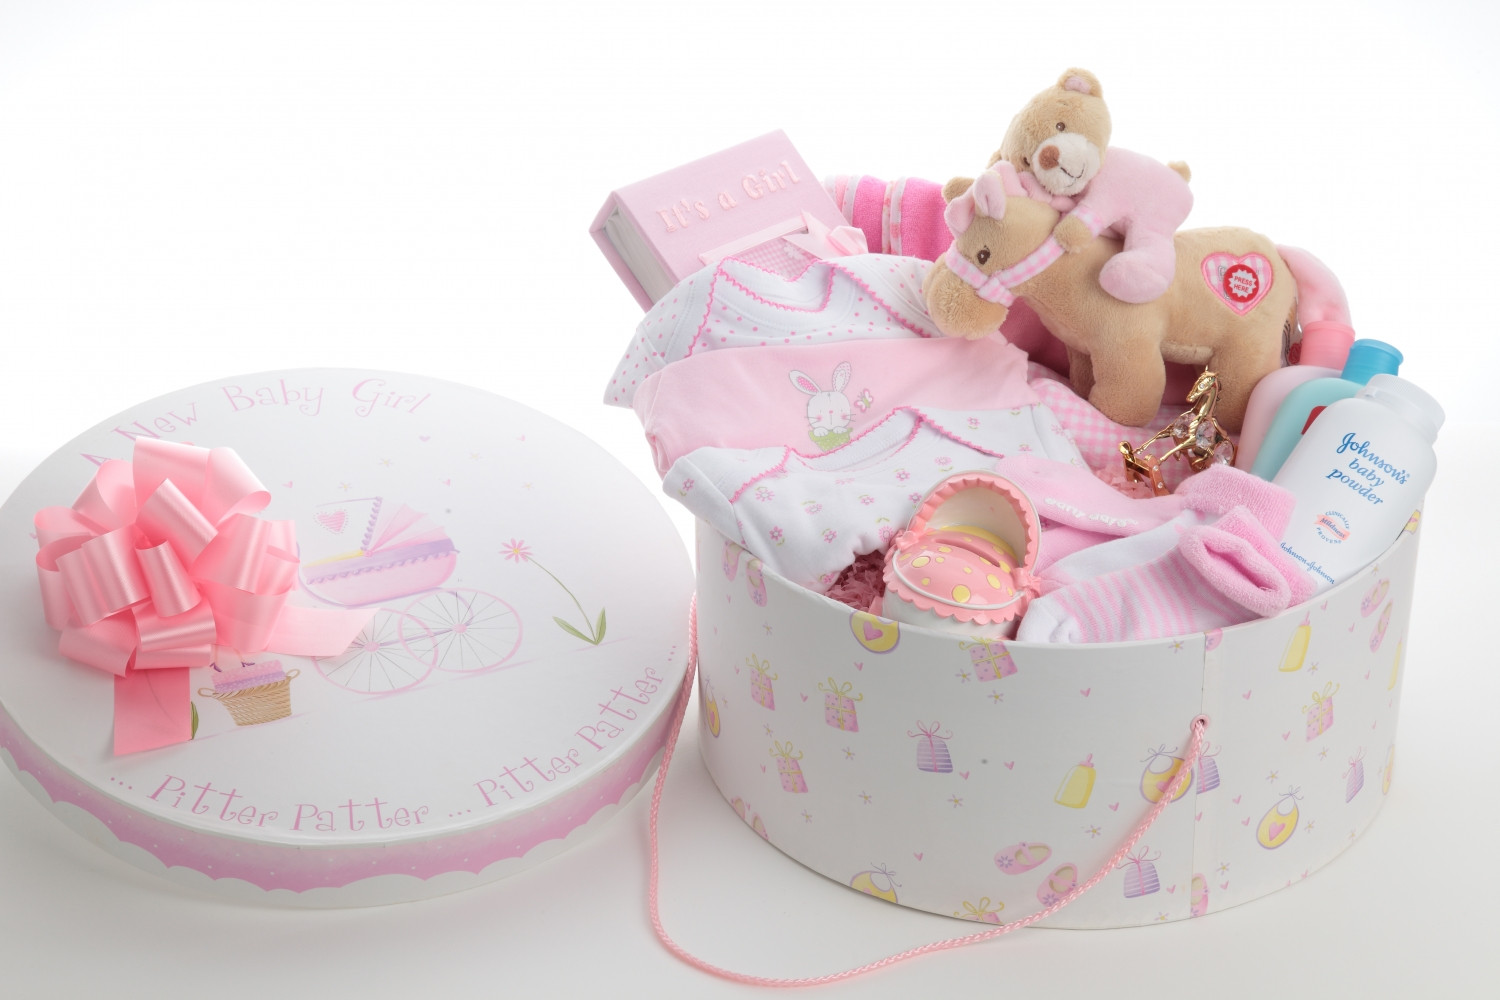 Best ideas about Baby Arrival Gift Ideas . Save or Pin New Arrivals New Baby Gifts Now.